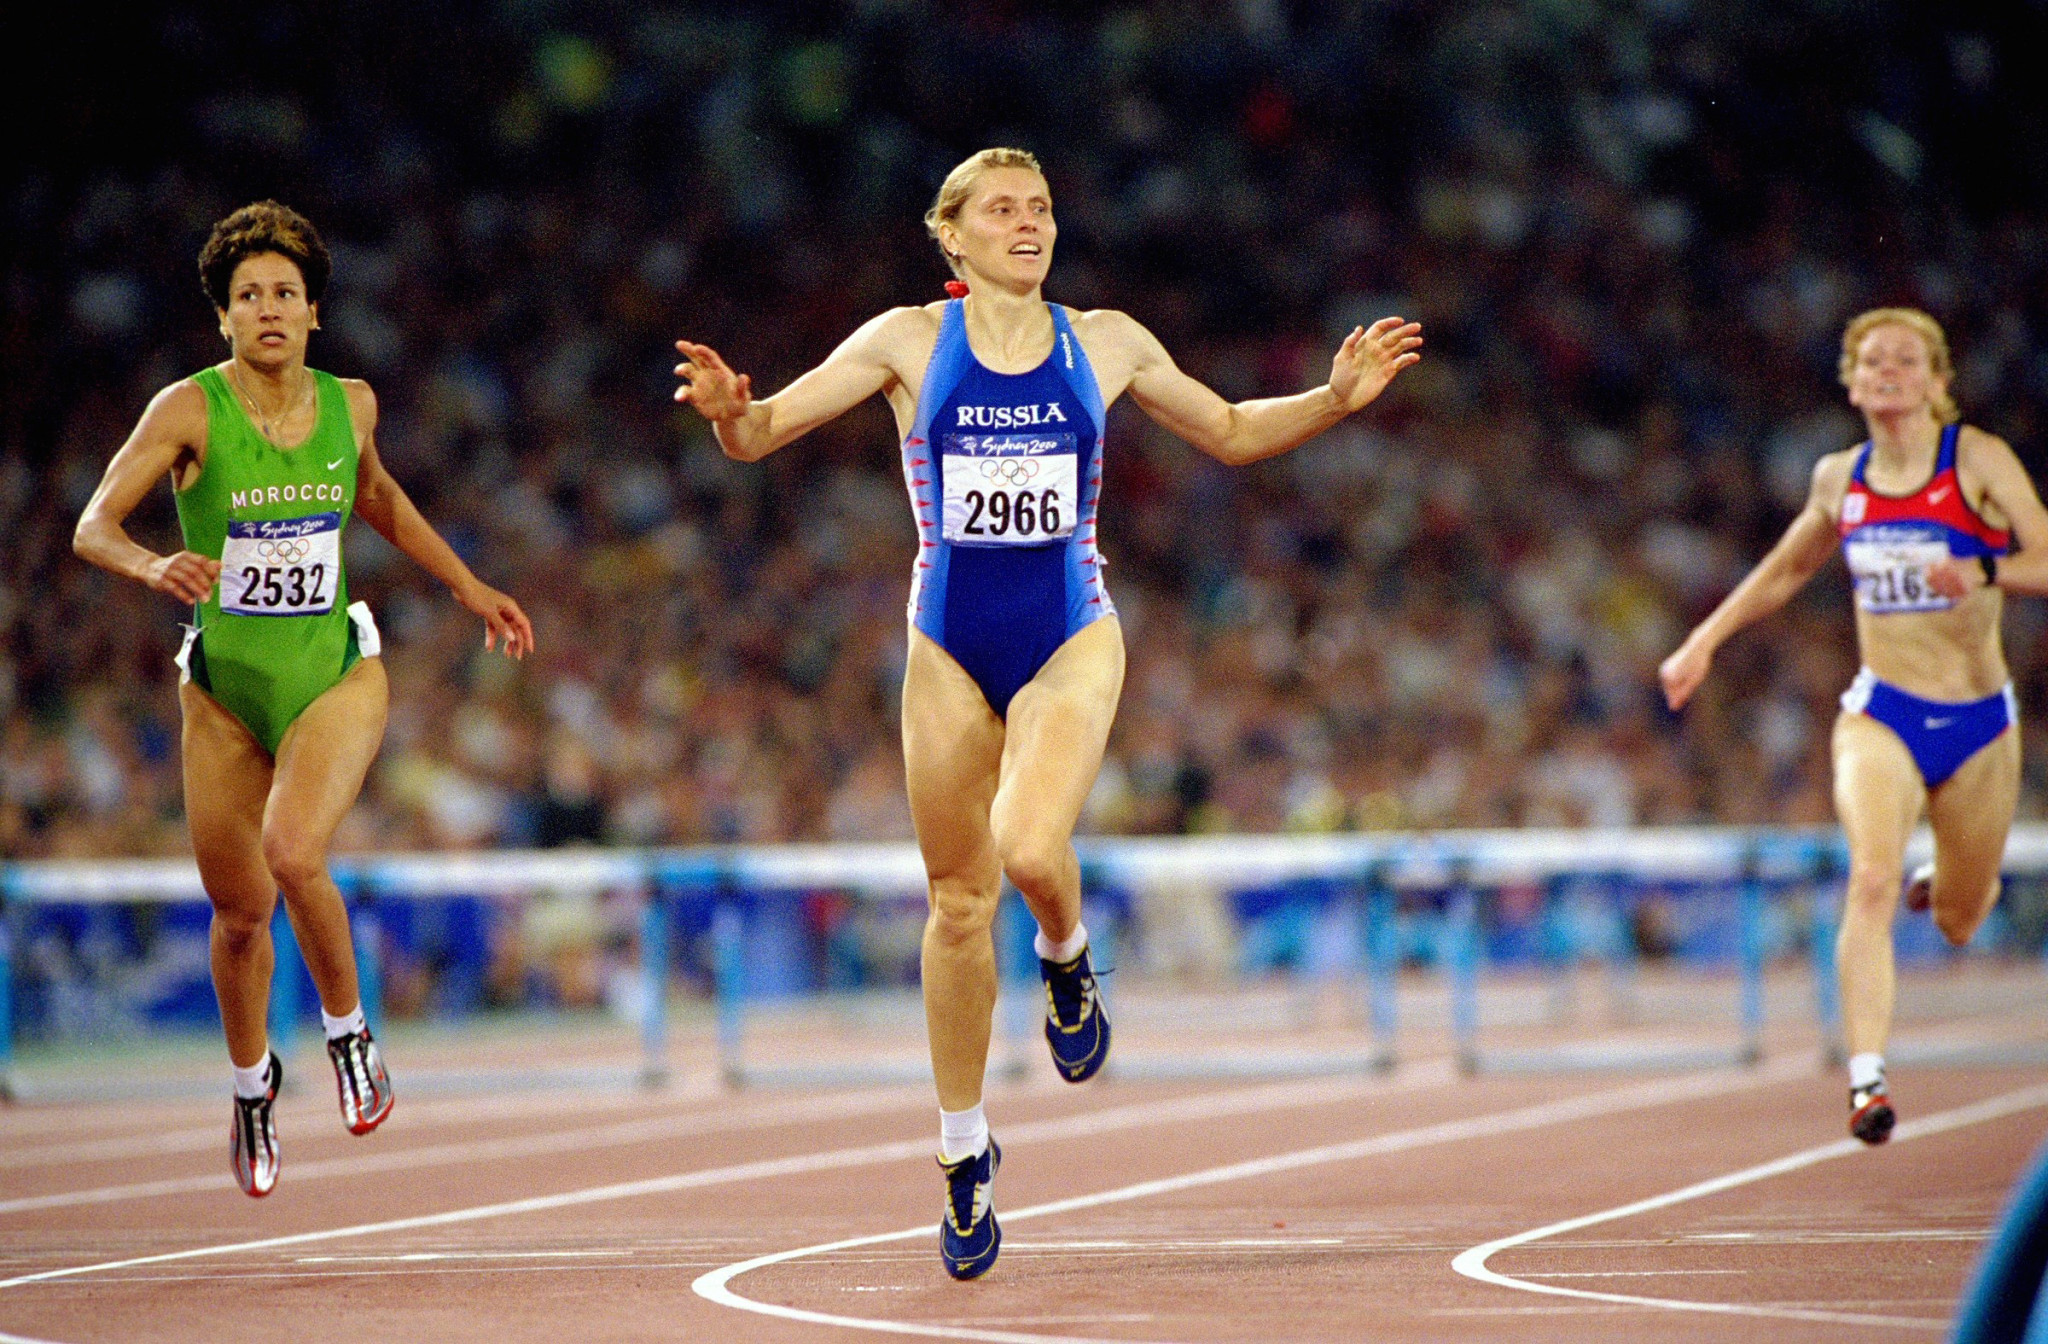 Sydney 2000 400m hurdles champion Irina Privalova is among the nominees for RusAF President ©Getty Images